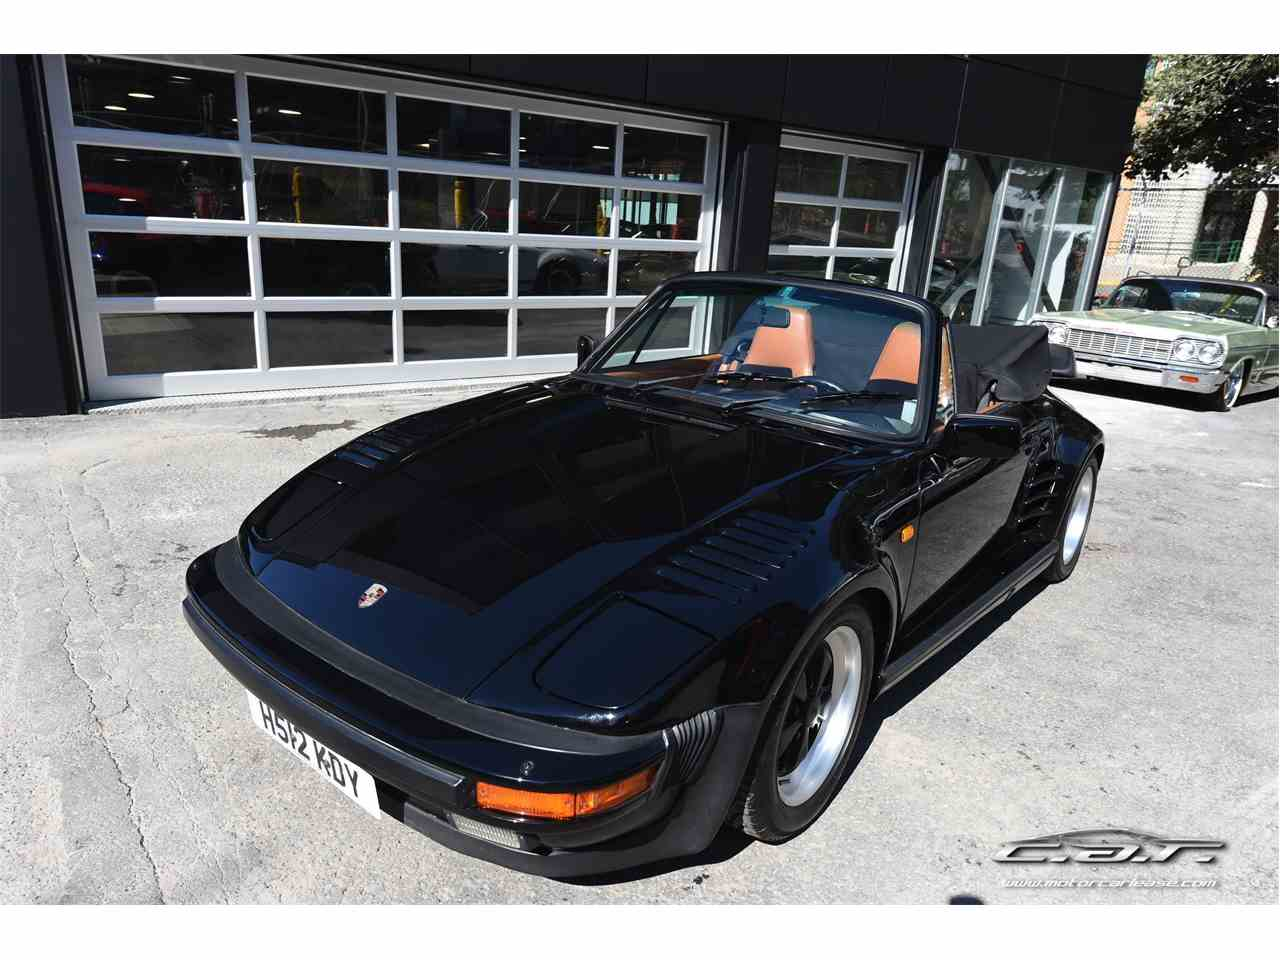 Large Picture of 1987 Porsche 930 Turbo located in Montreal Quebec - $189,000.00 - J8YA